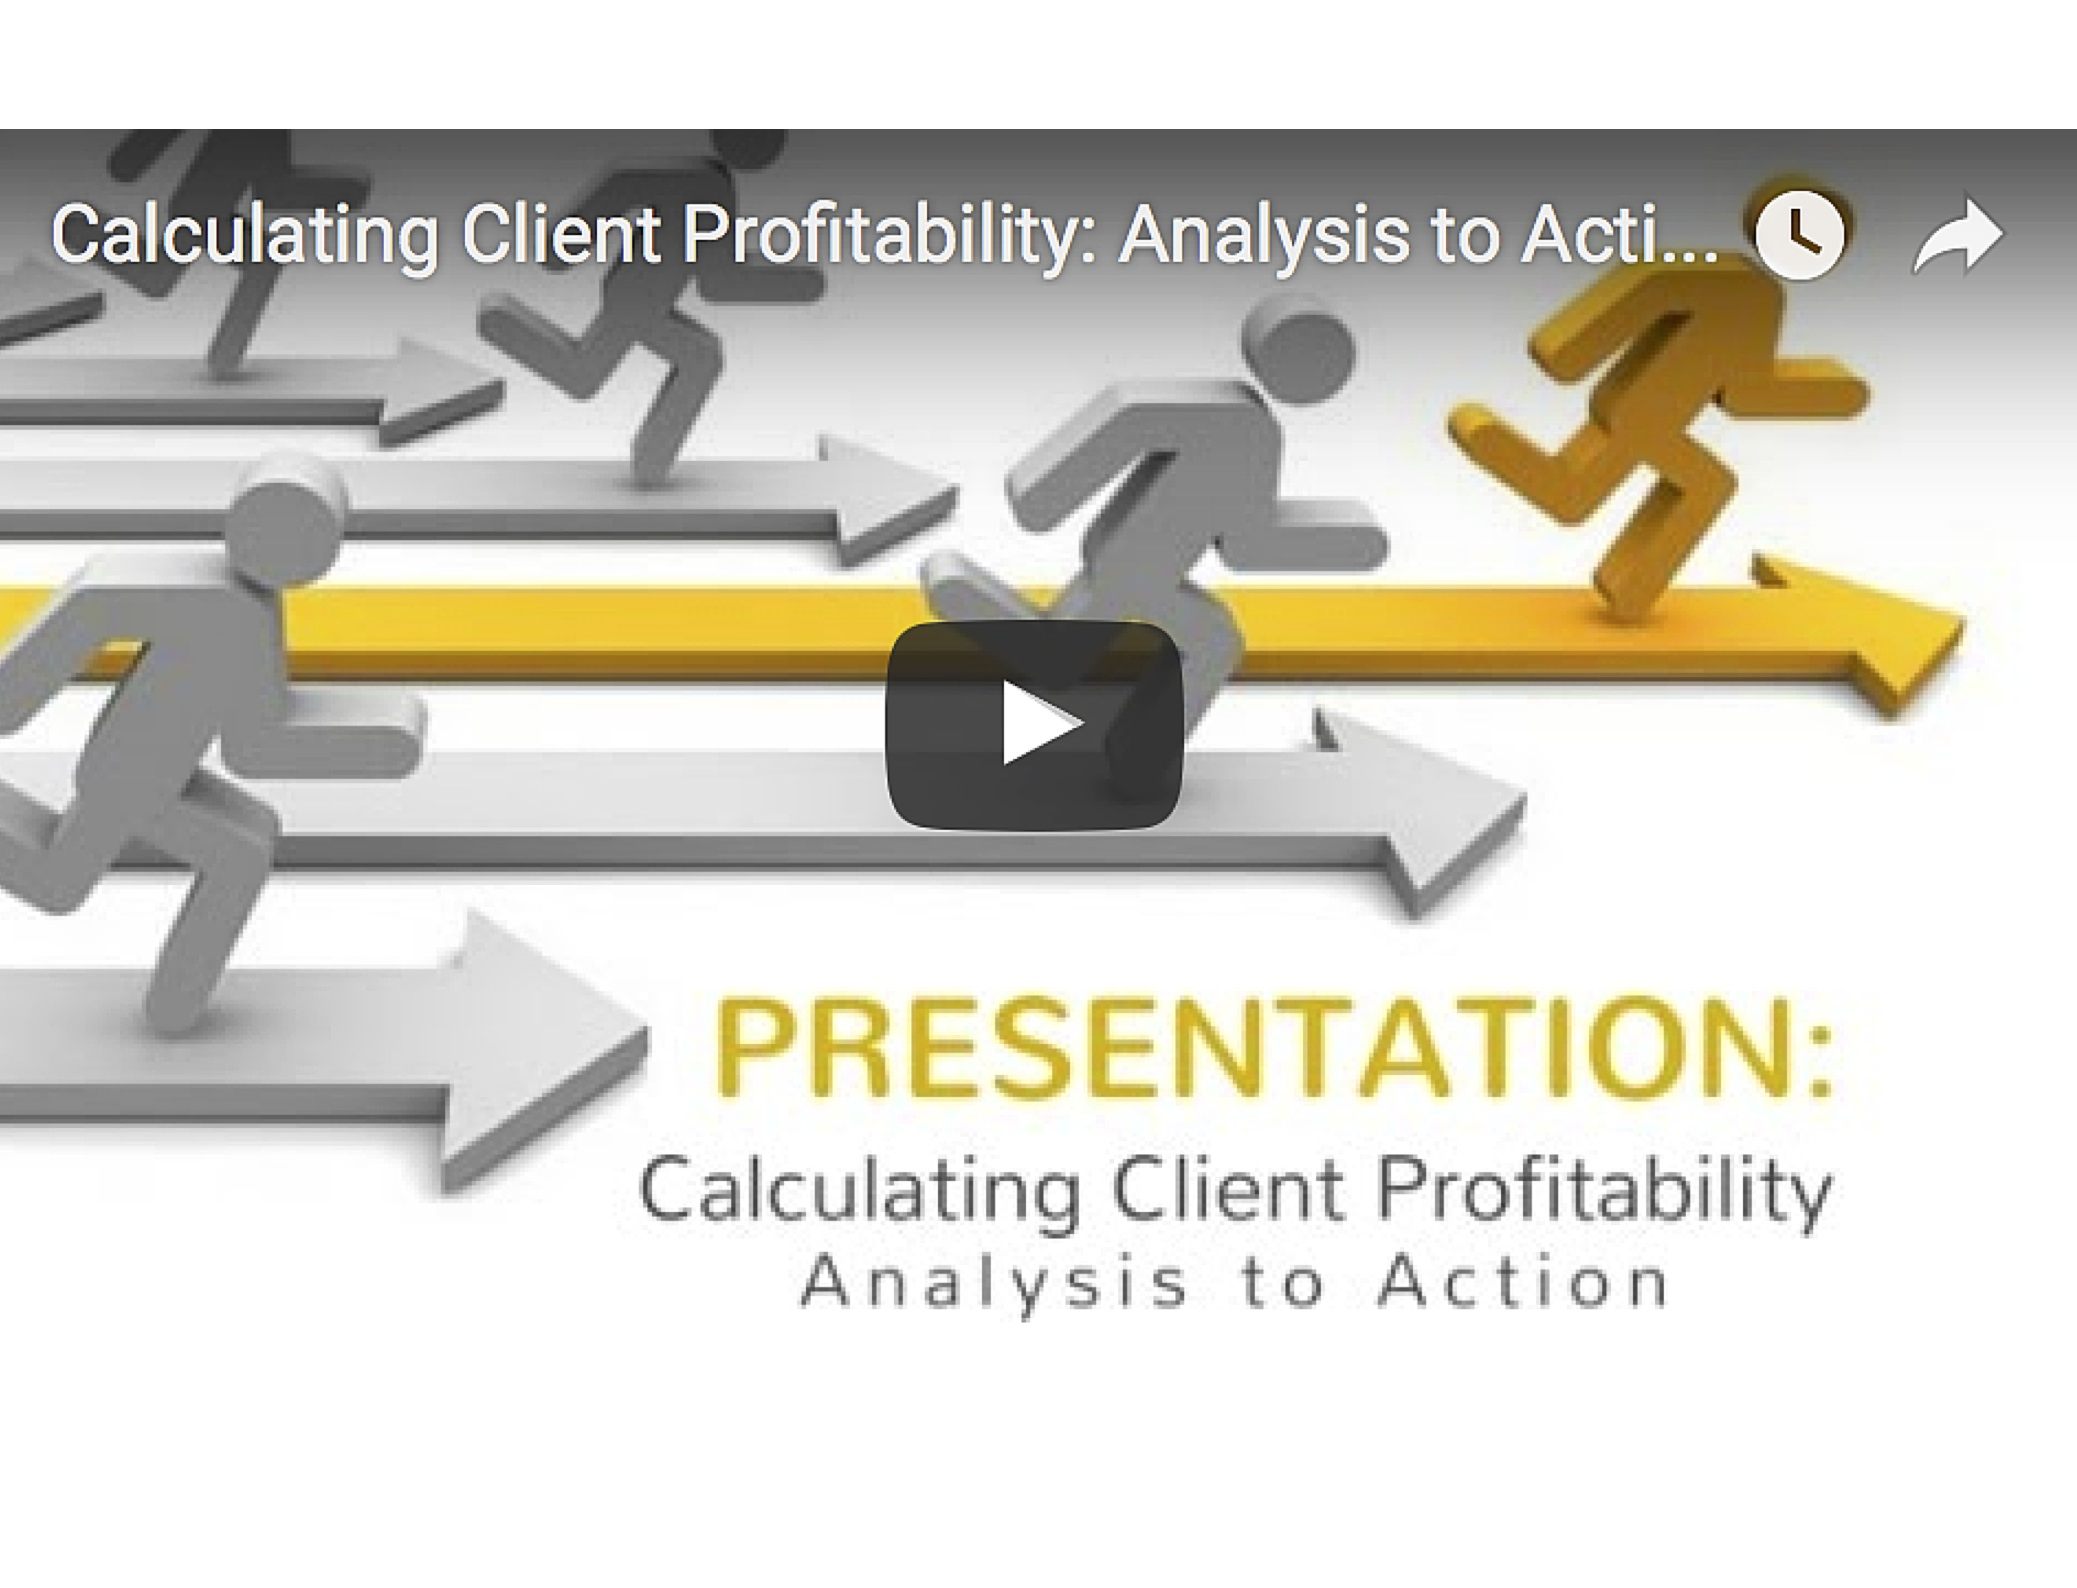 Resources-Webinar-Calculating-Profitablity-Images2.jpg